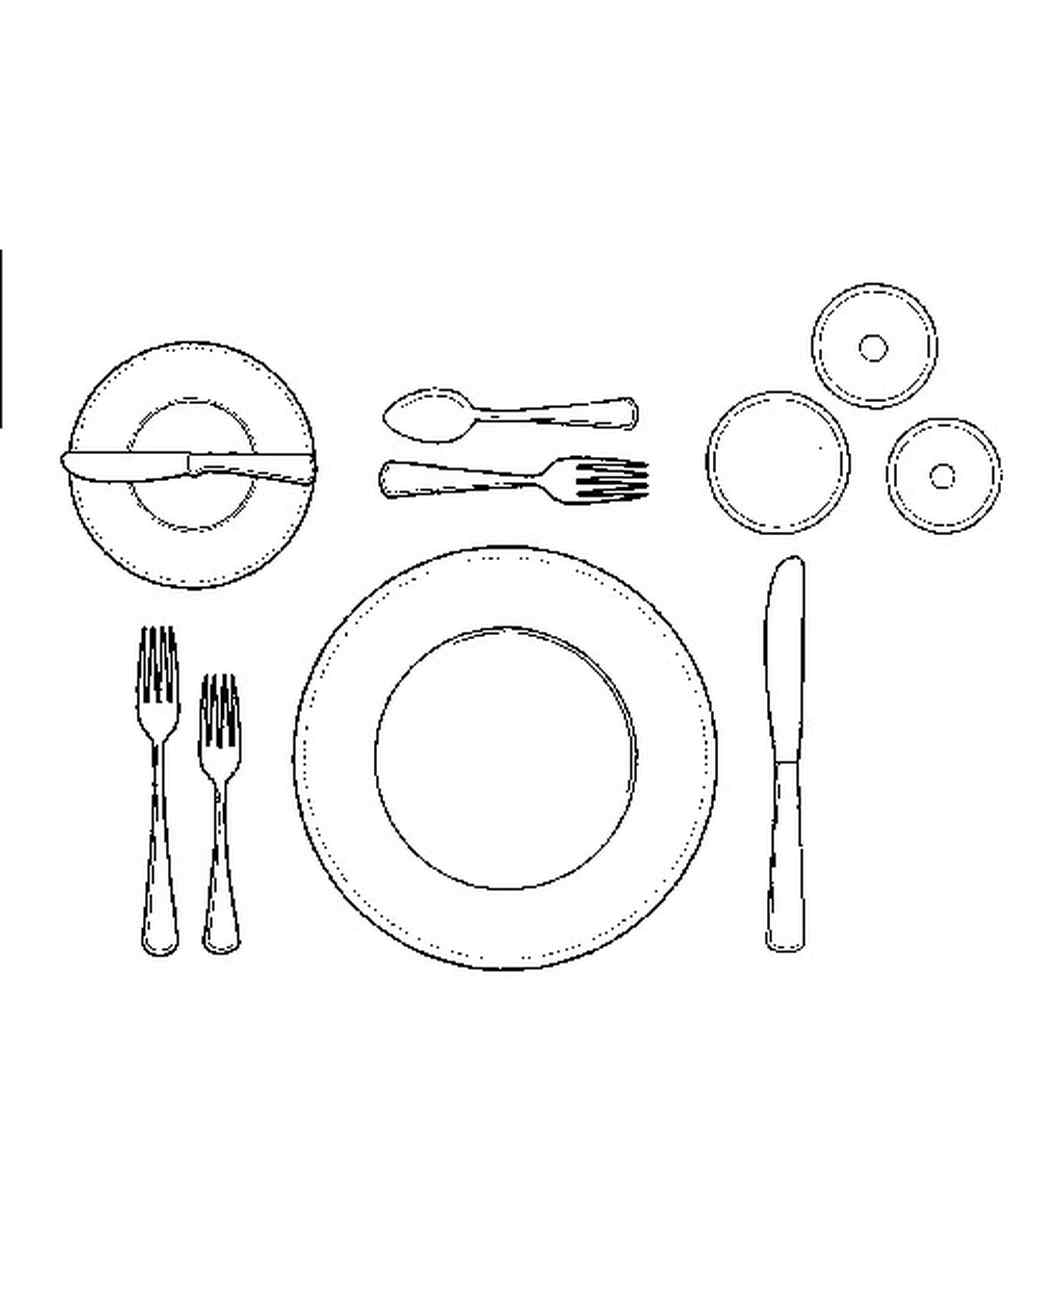 Diagram of place setting online schematic diagram how to set a formal dinner table martha stewart rh marthastewart com diagram of informal place setting american place setting diagram ccuart Gallery